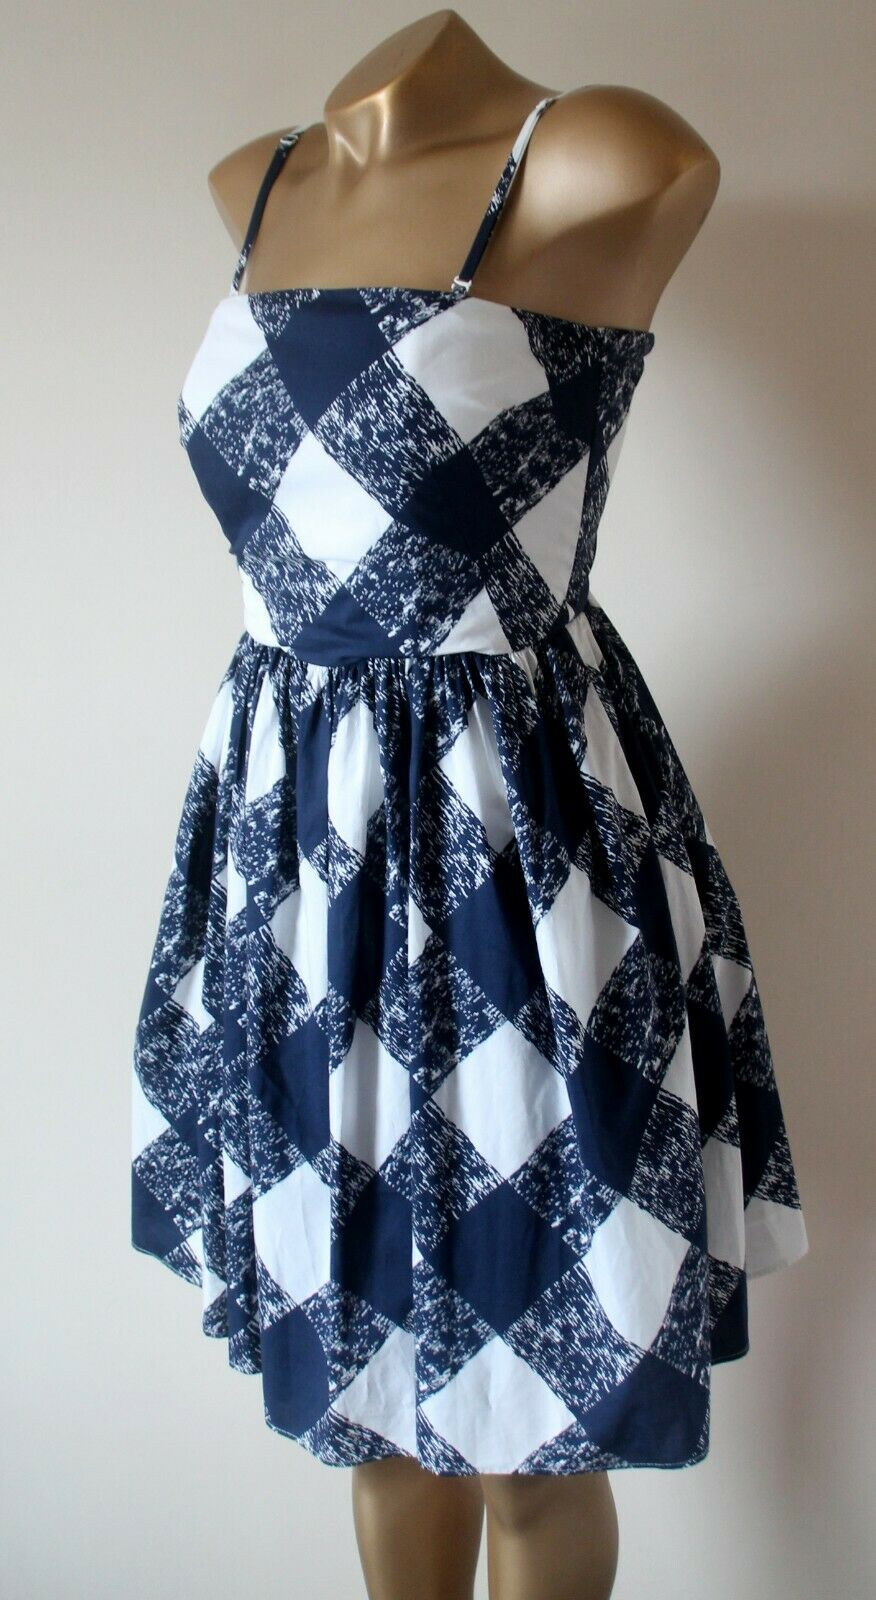 BODEN Navy bluee & White Sandra Removable Adjustable Strap Lined Cotton Dress 8